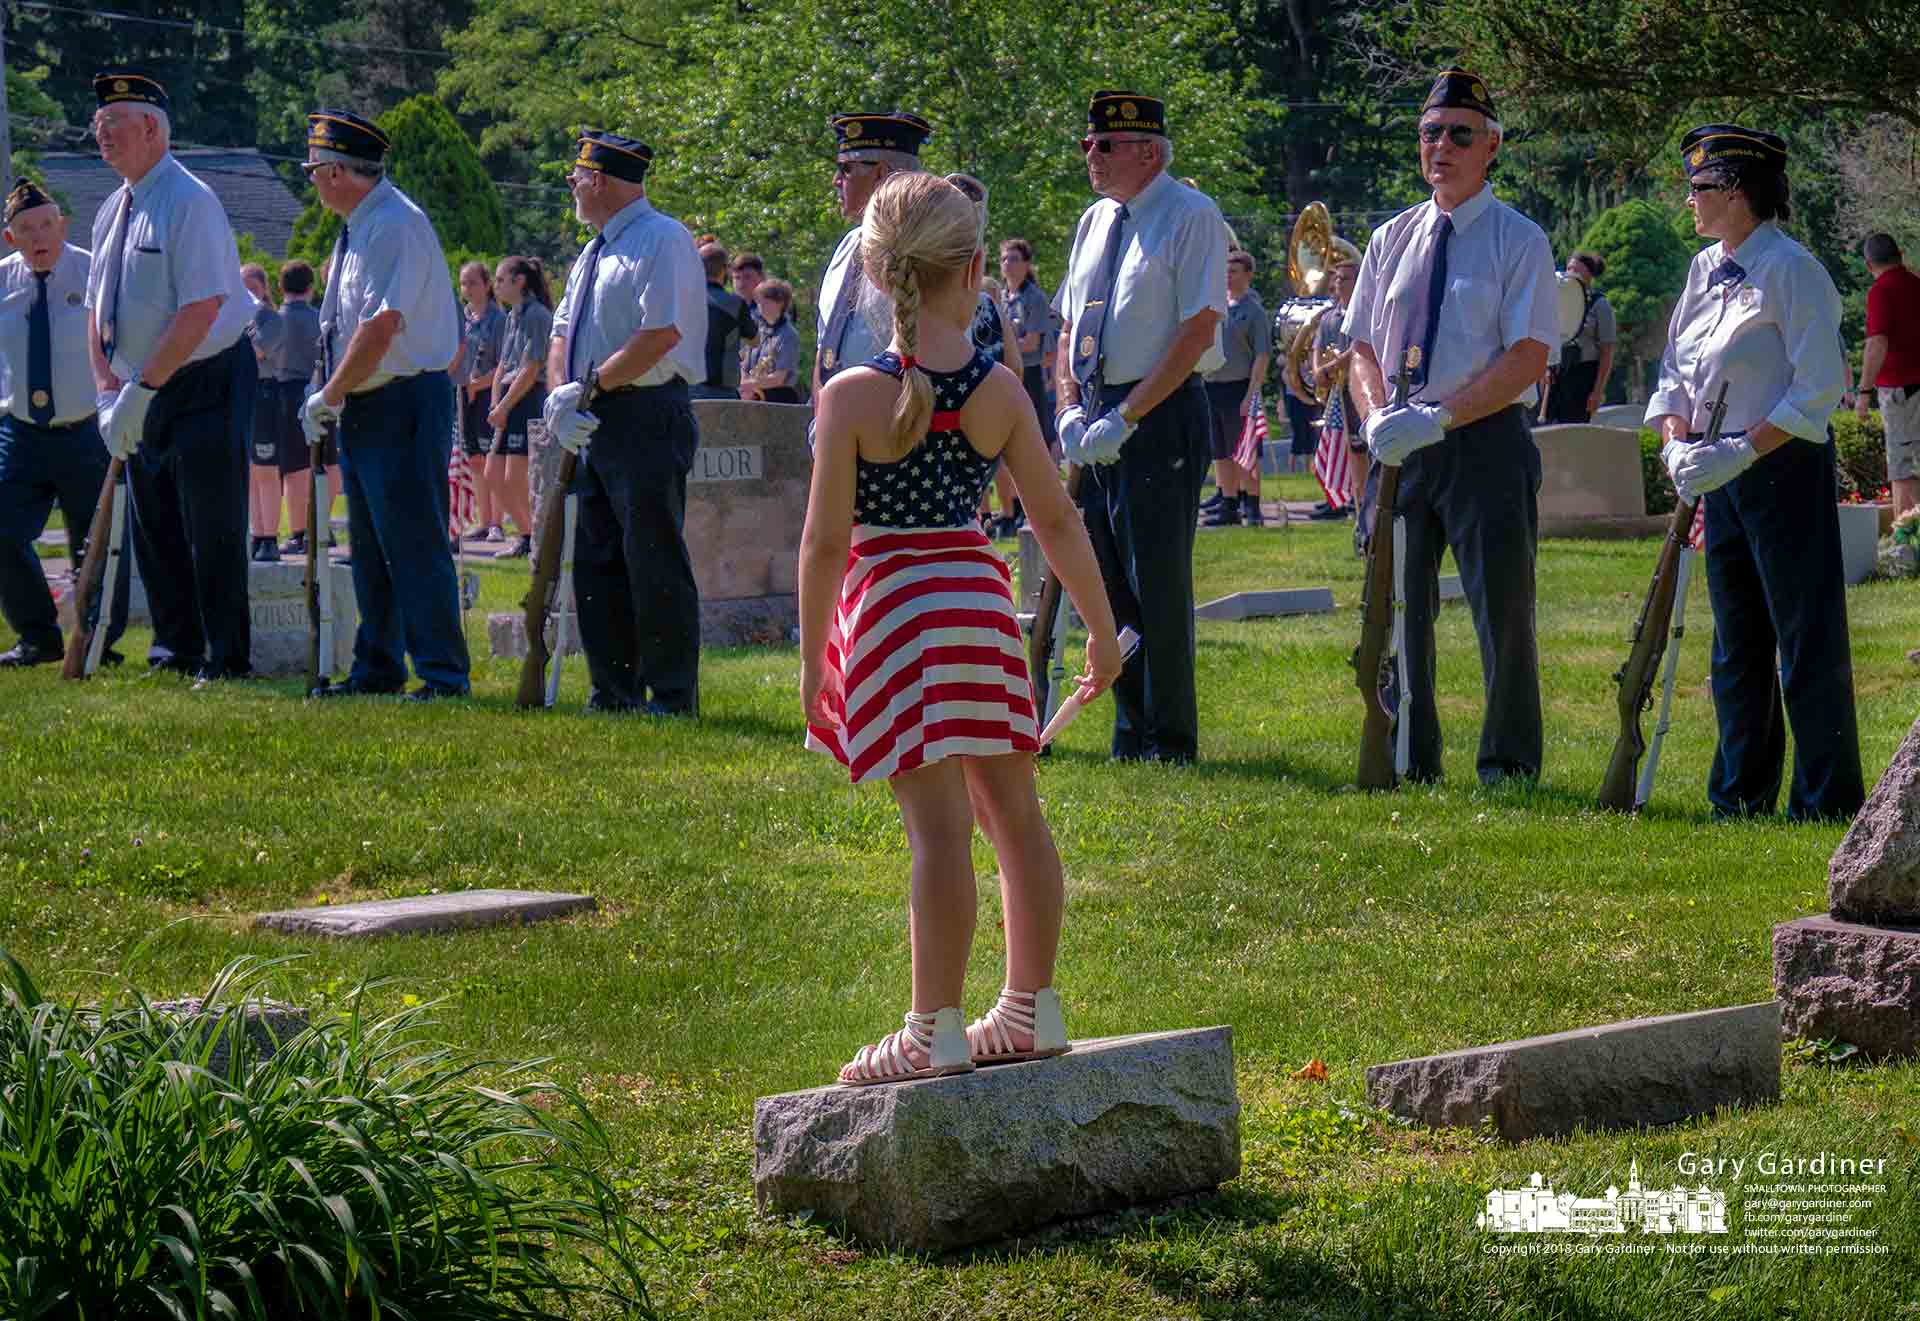 A young girl settles onto the perch she thinks is best to retrieve spent brass from the American Legion Honor Guard Firing Squad during Memorial Day ceremonies at Otterbein Cemetery in Westerville. My Final Photo for May 28, 2018.